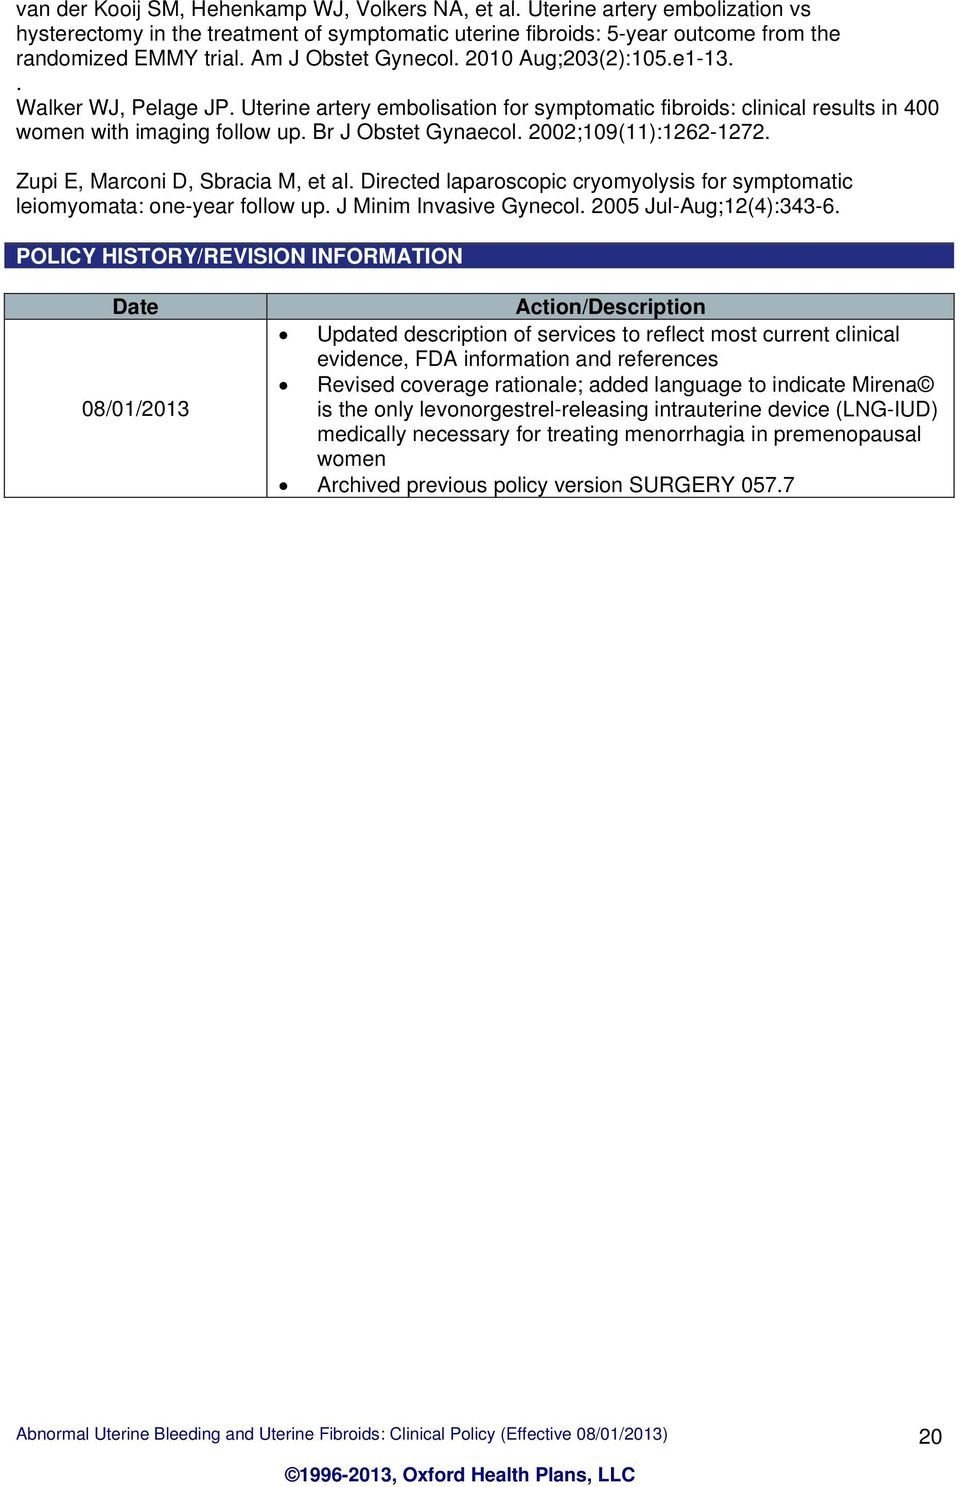 icd 10 code for menorrhagia